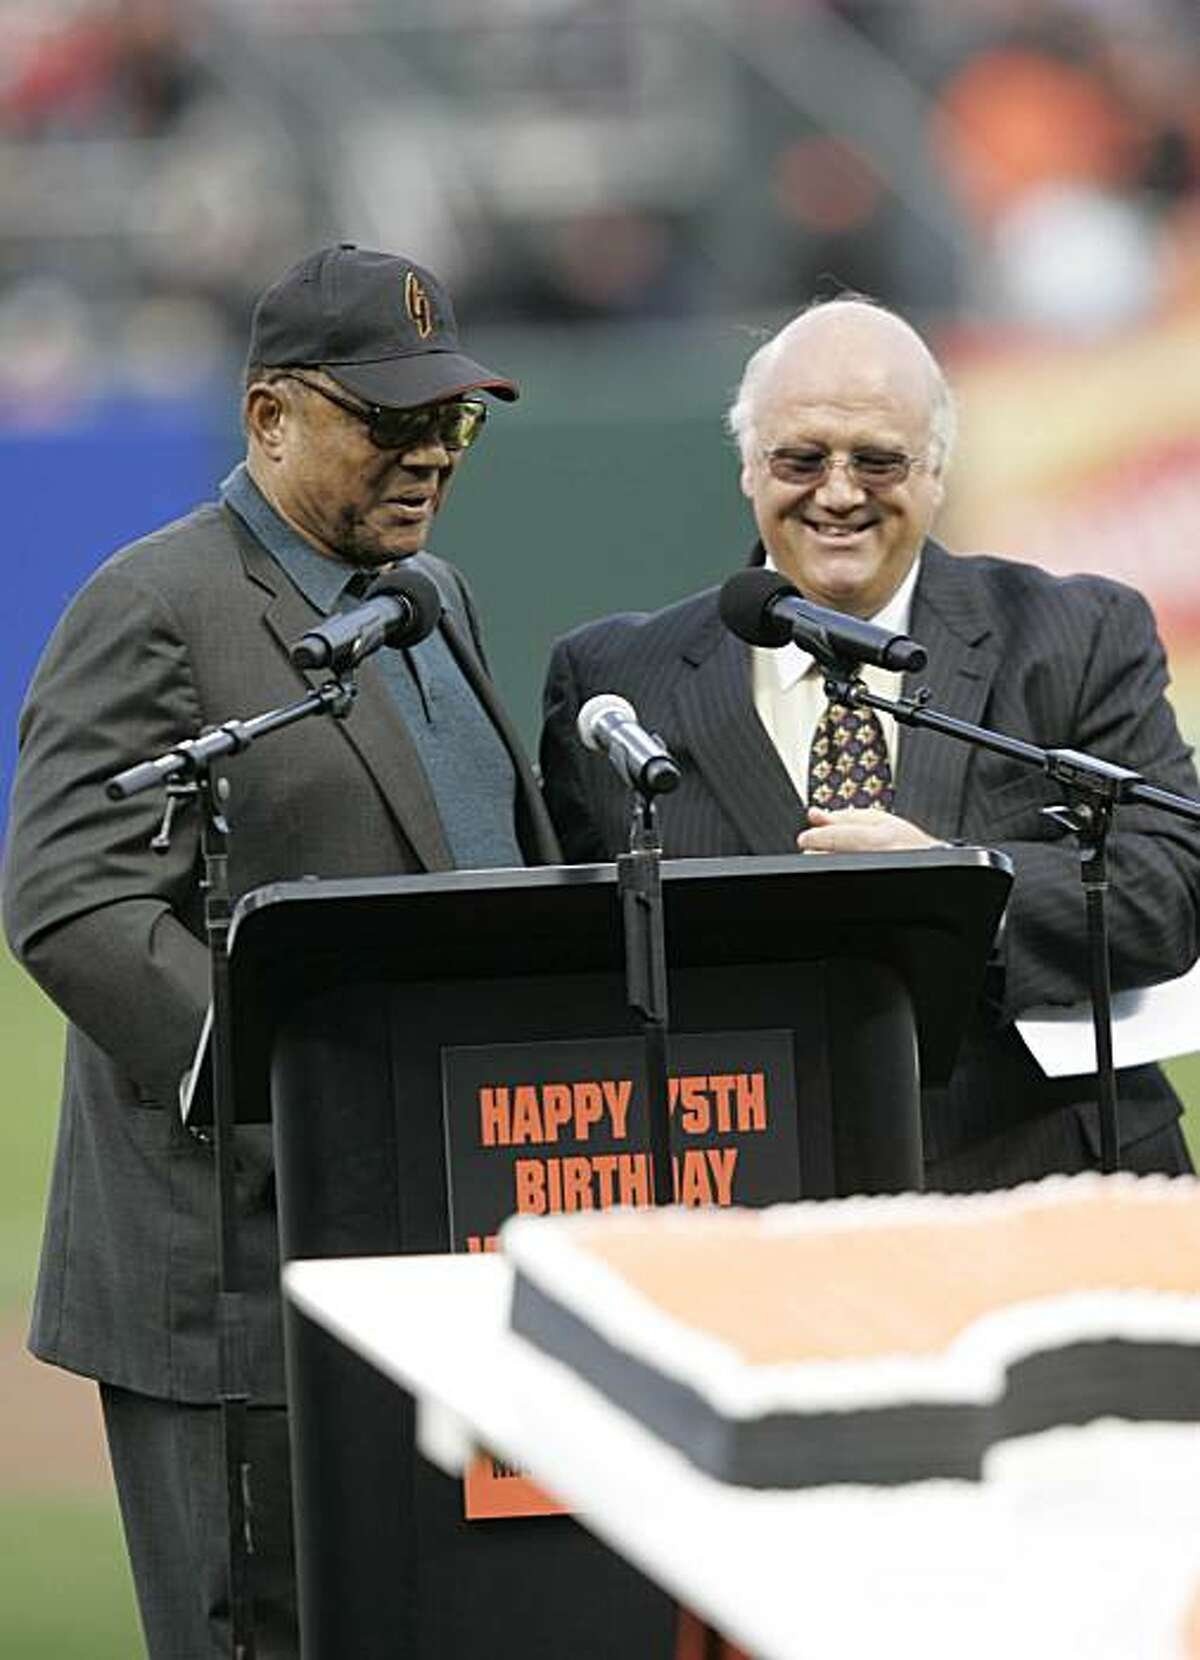 KNBR broadcaster Jon Miller introduced Willie Mays during Mays' 75th birthday celebrations. Event on May 14, 2006 in San Francisco. The San Francisco Giants played the Los Angeles Dodgers at AT&T Park on May 14, 2006.